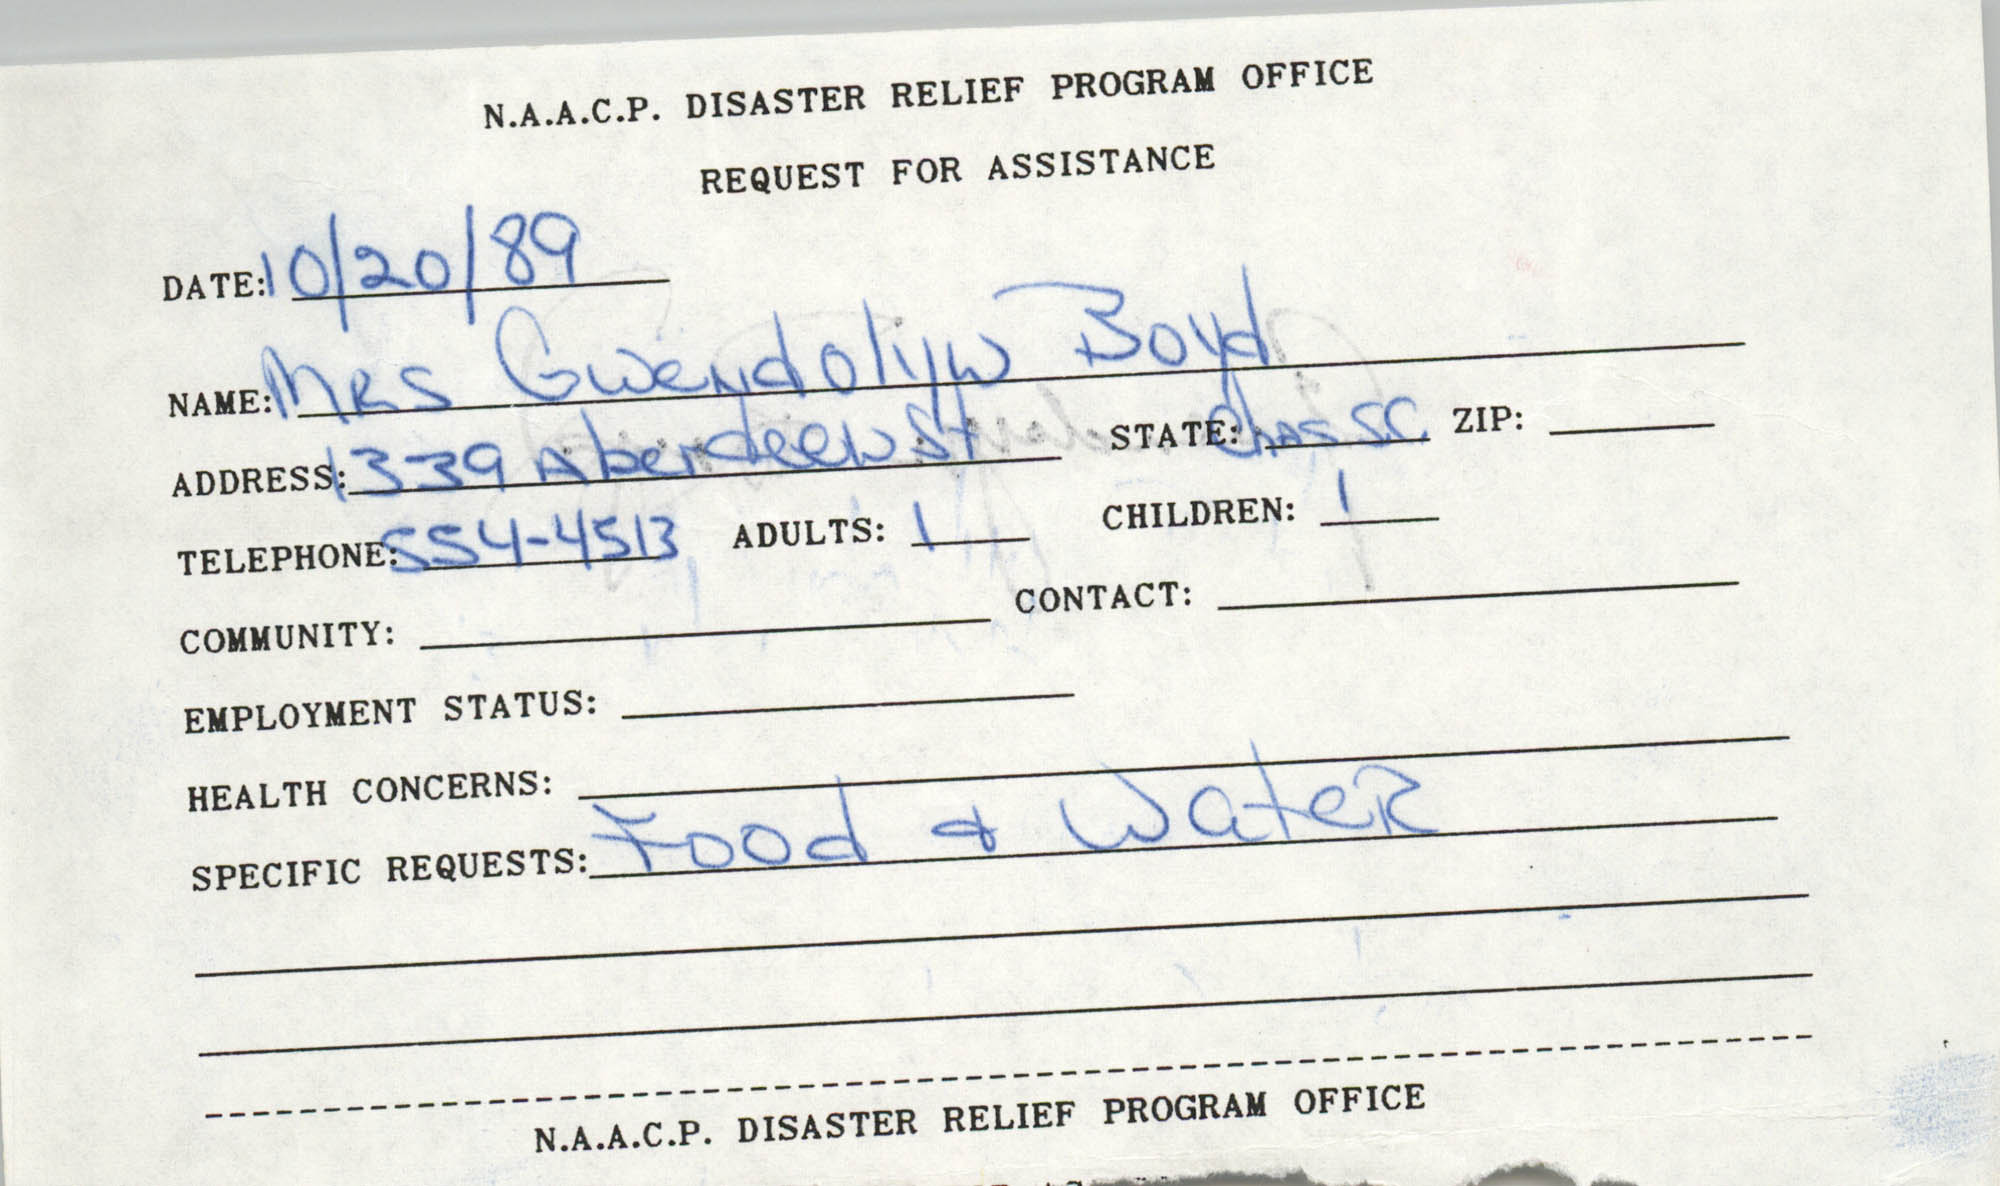 NAACP Disaster Relief Program Office, Hurricane Huge Requests for Assistance, 1989, Page 41